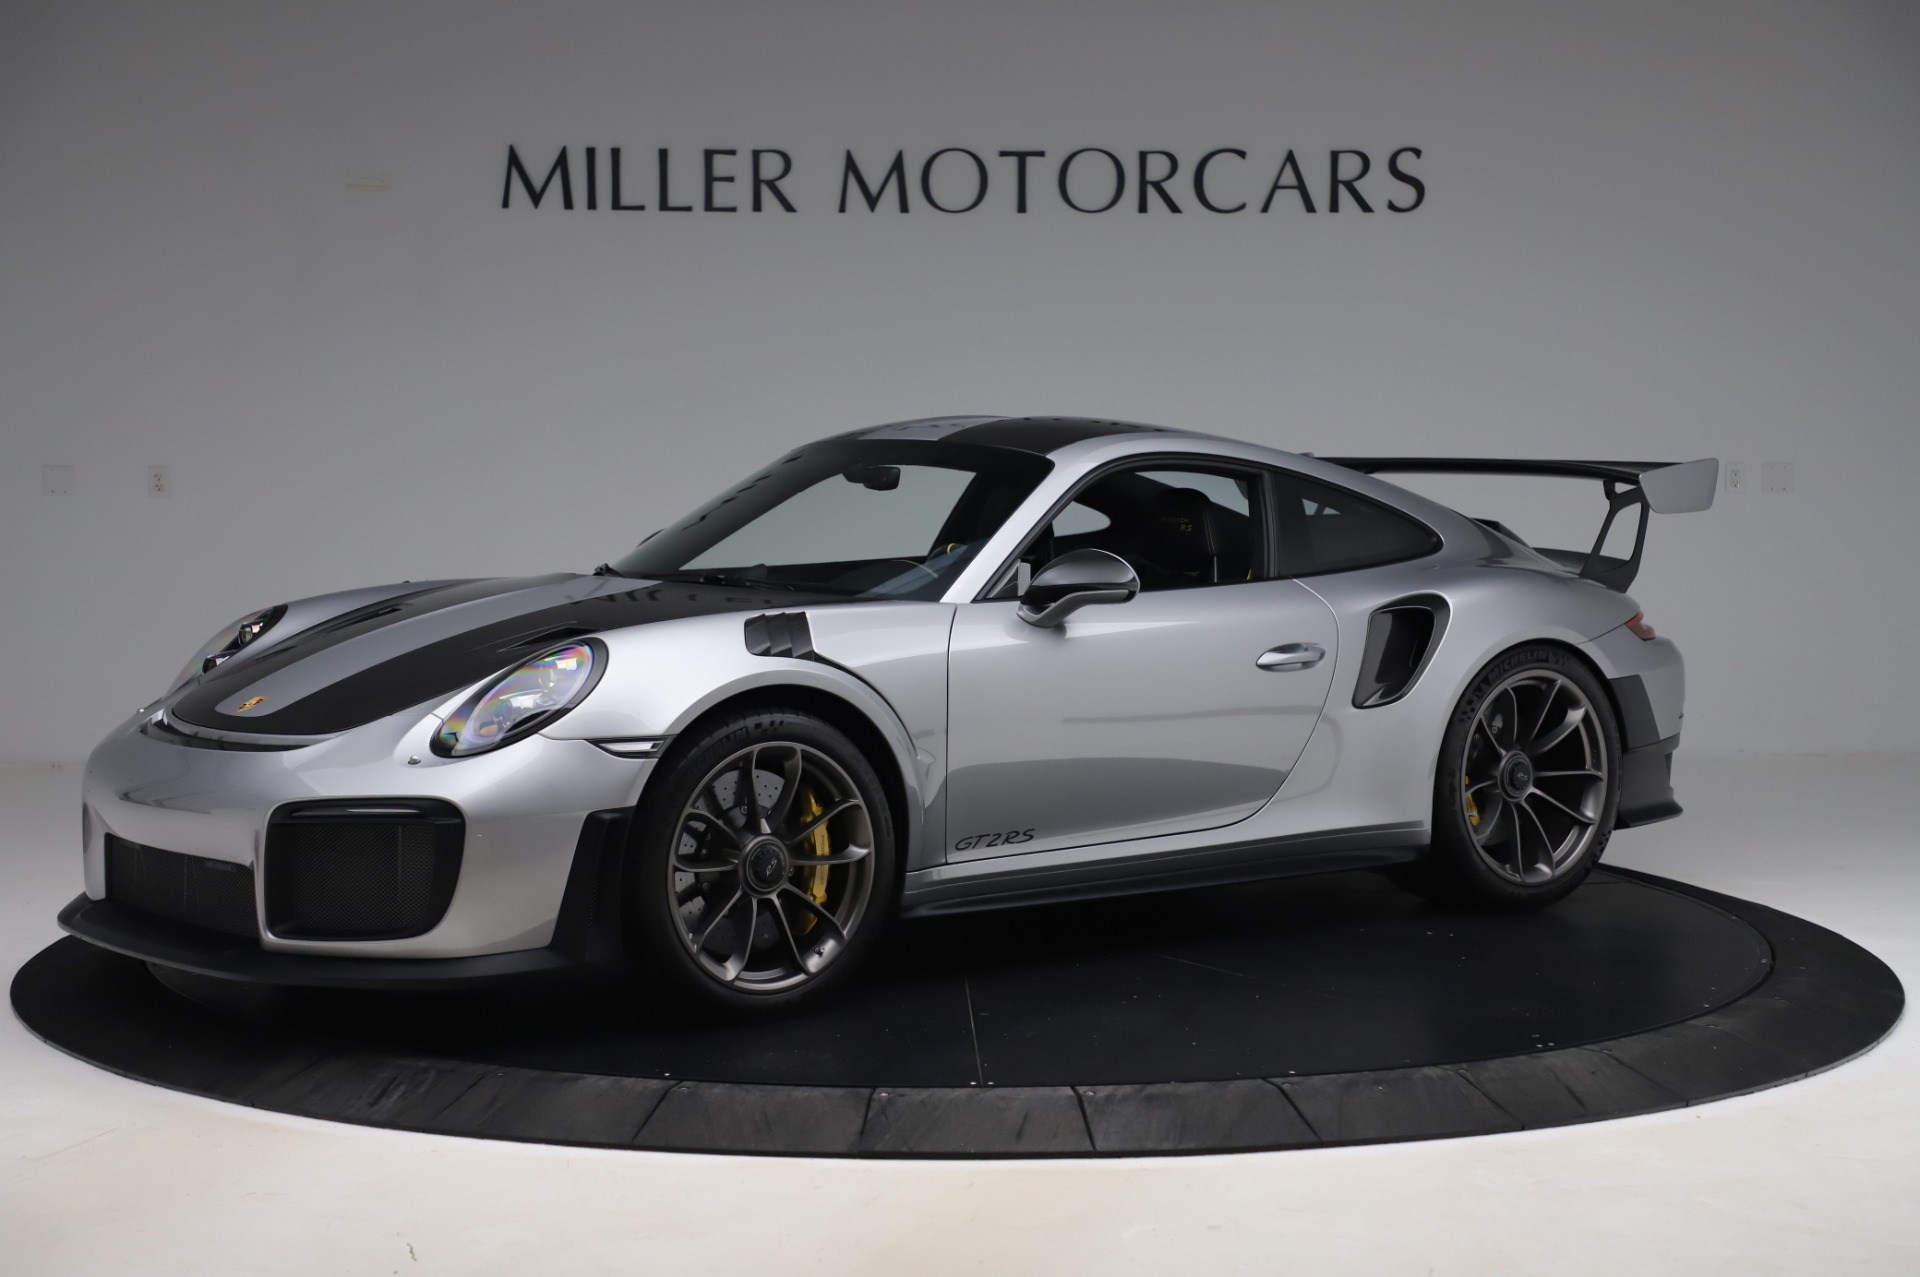 Used 2019 Porsche 911 GT2 RS for sale $316,900 at Rolls-Royce Motor Cars Greenwich in Greenwich CT 06830 1